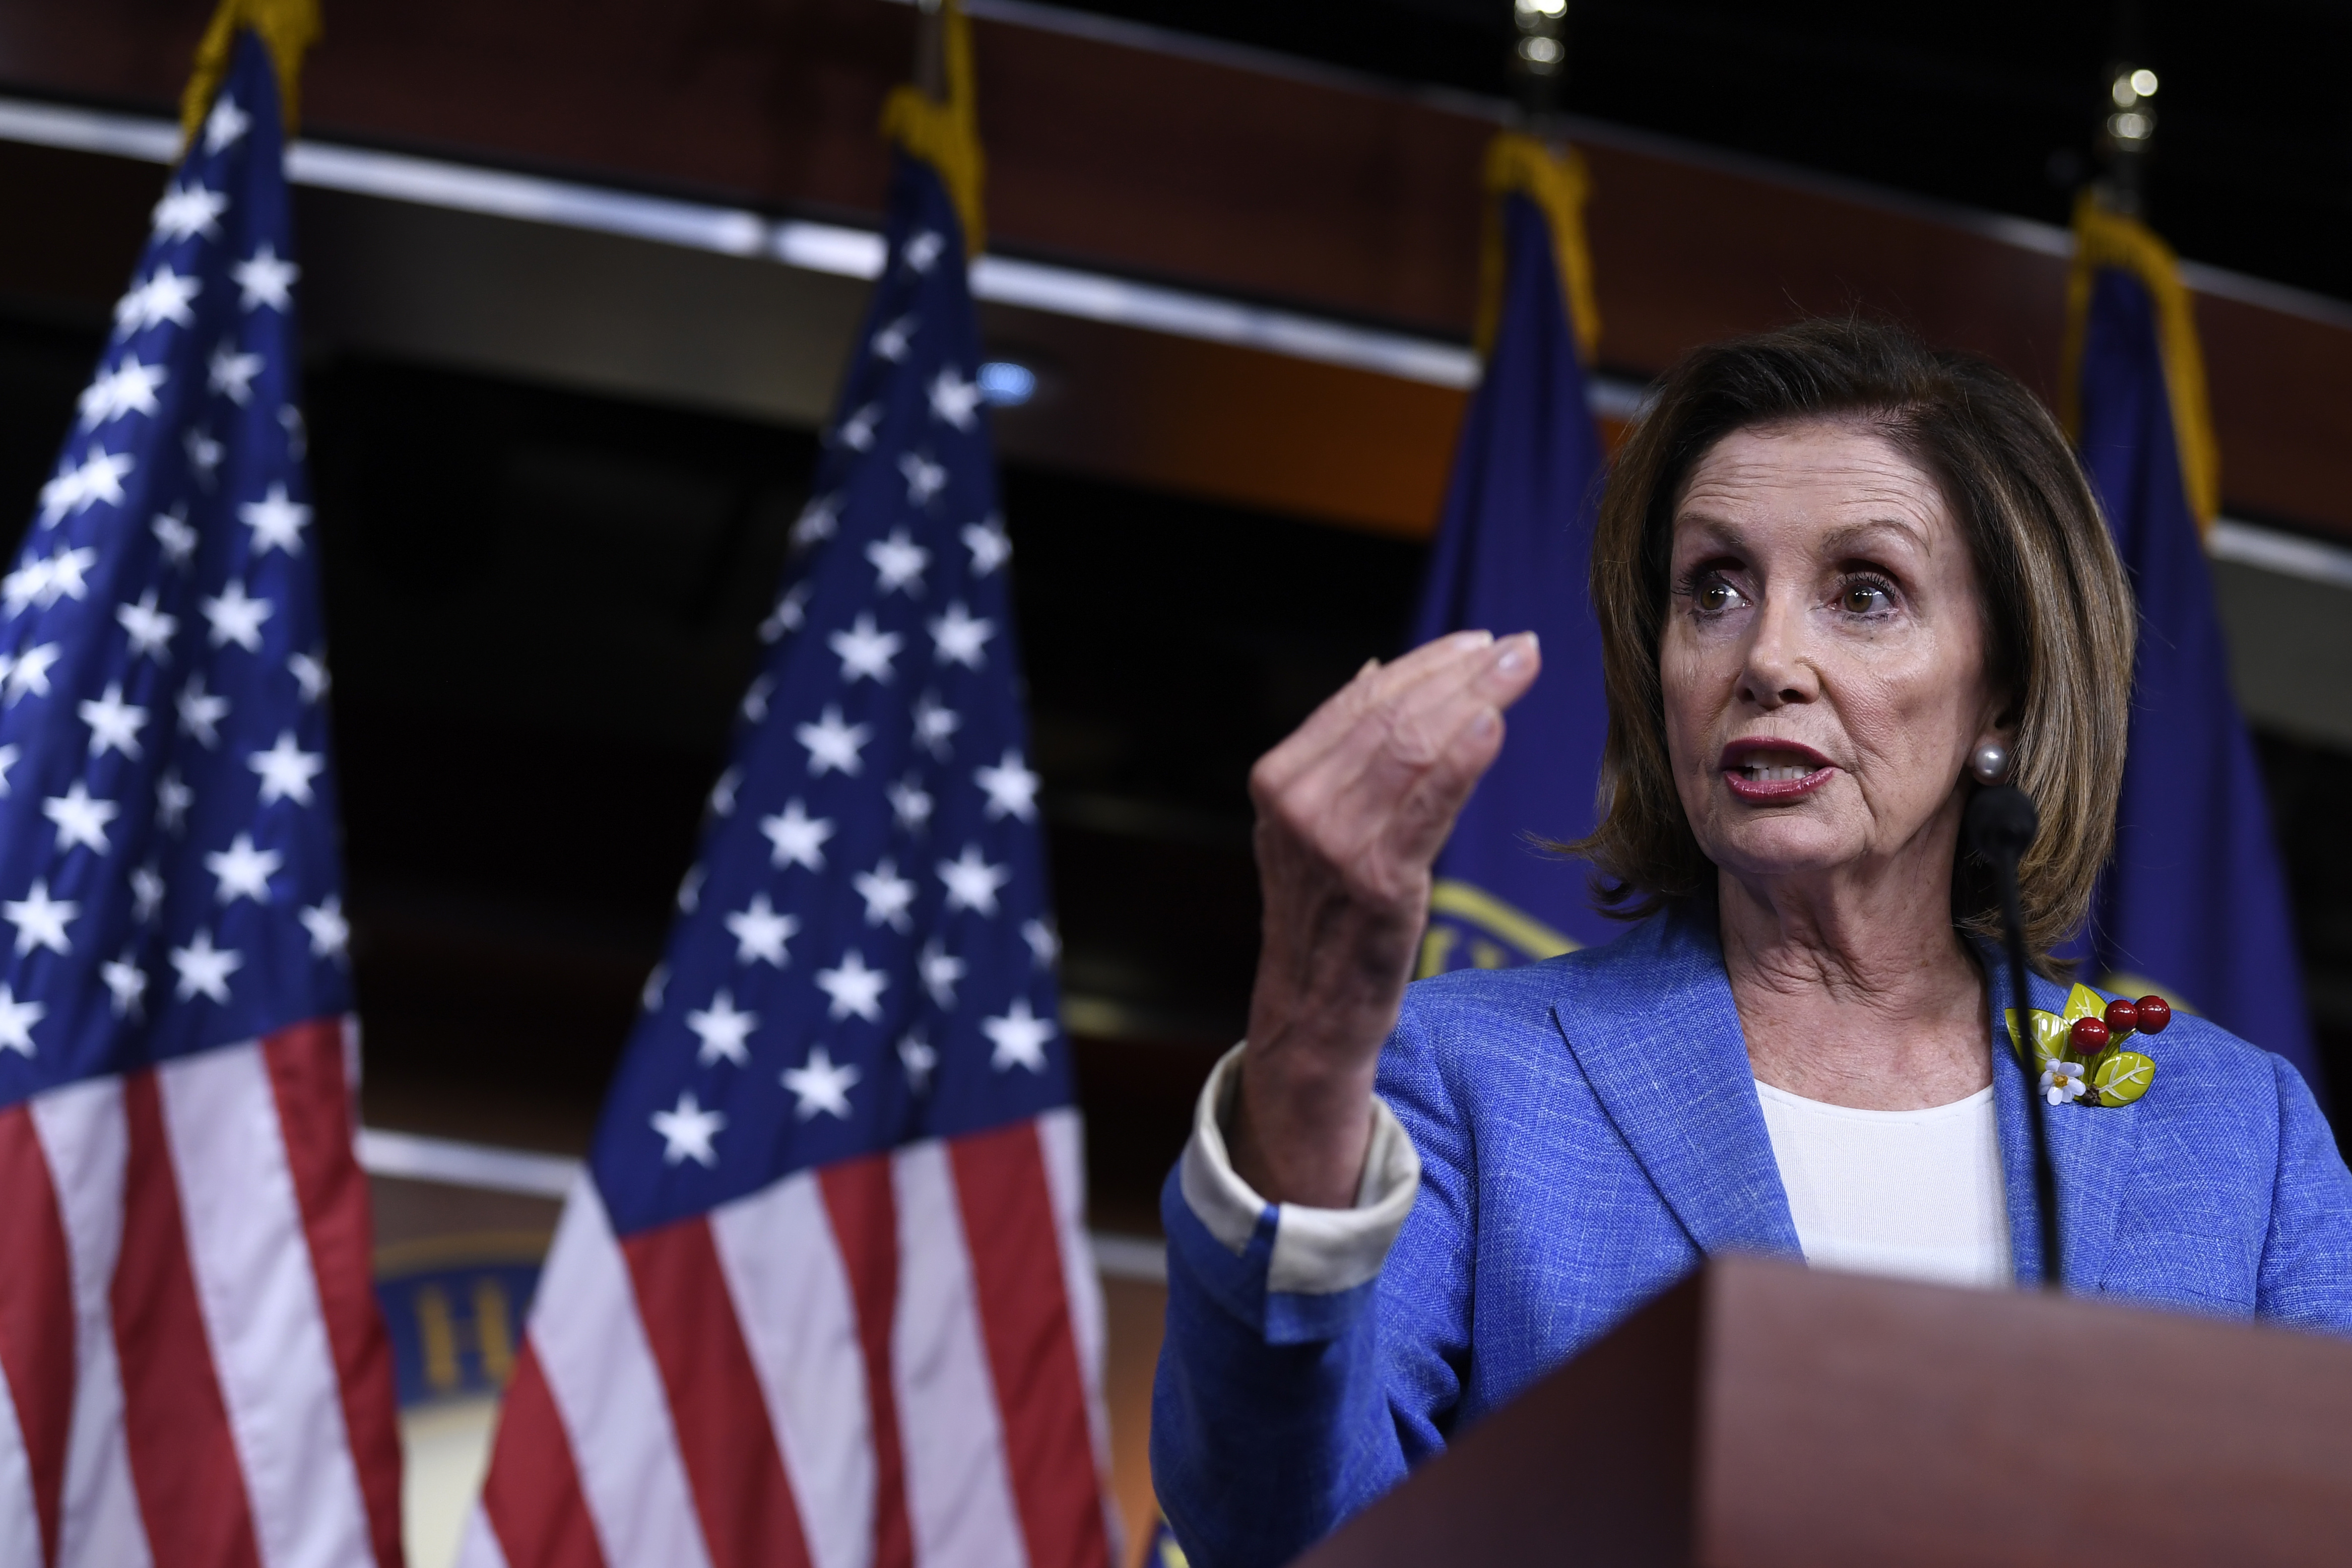 N.J. Democrats helped make Nancy Pelosi Speaker of the House. She's now paying the state party back.